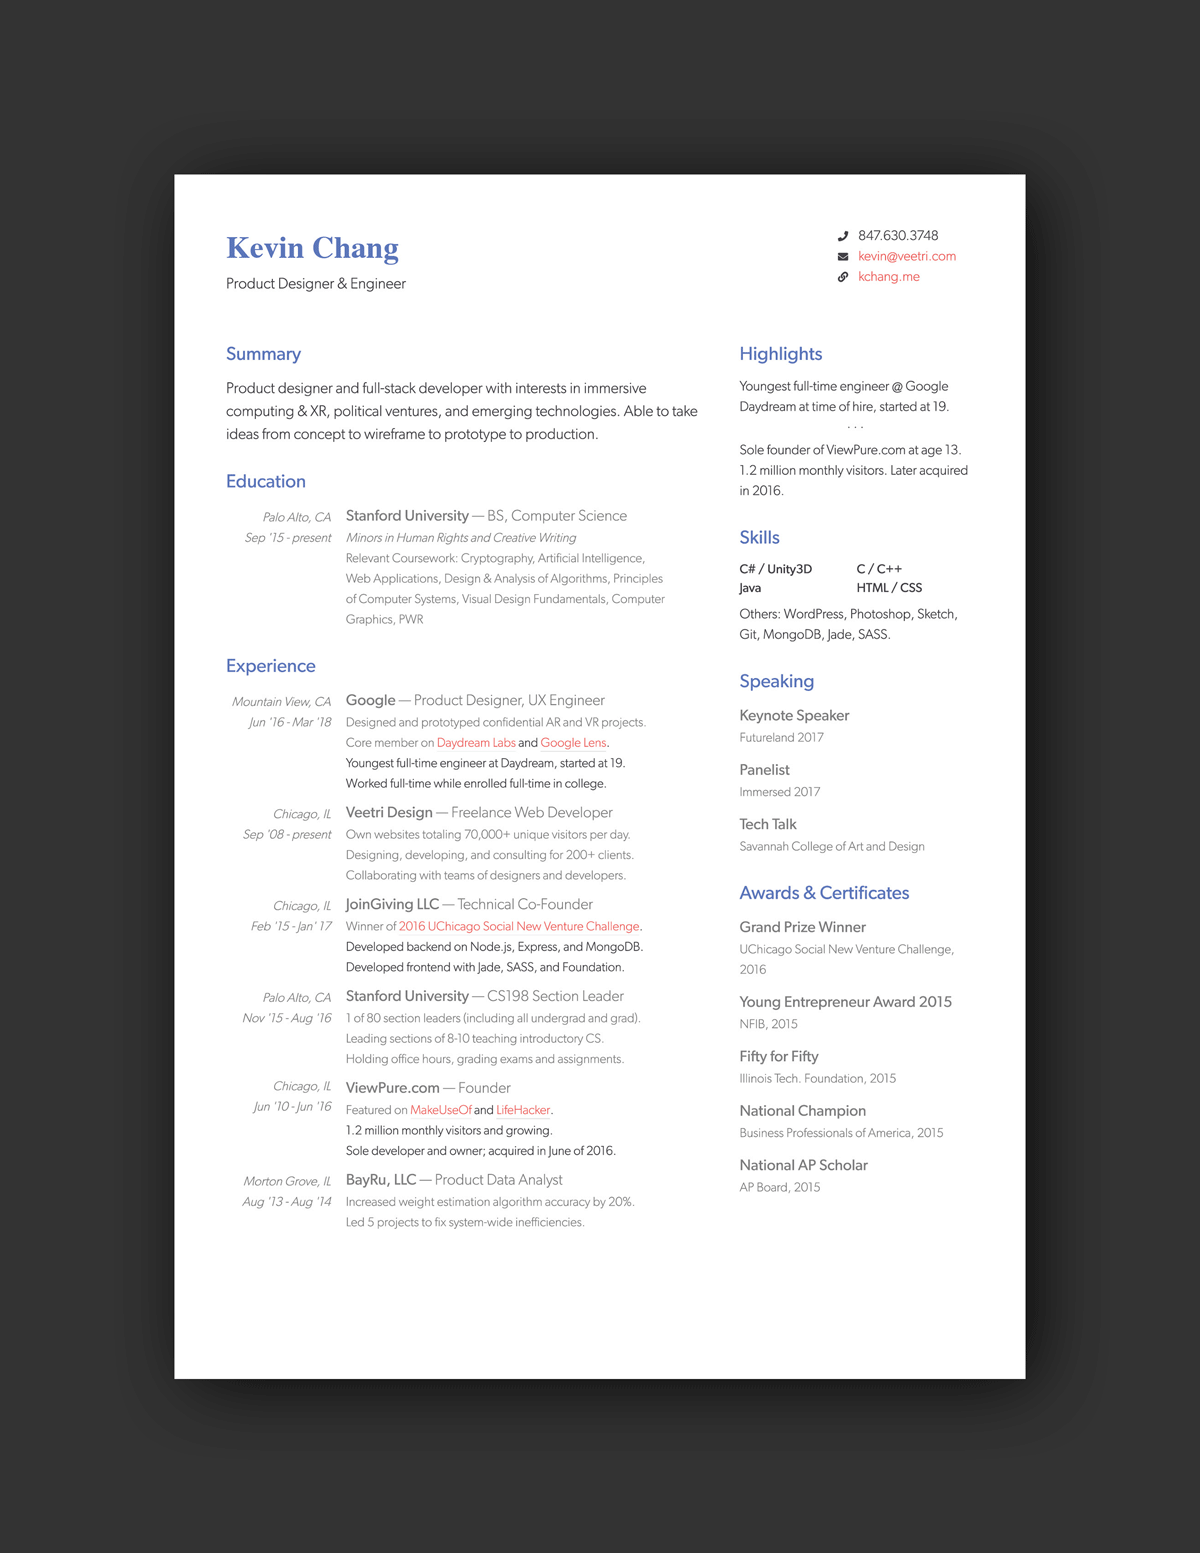 21 Inspiring Ux Designer Resumes And Why They Work Resume Design Resume Ux Design